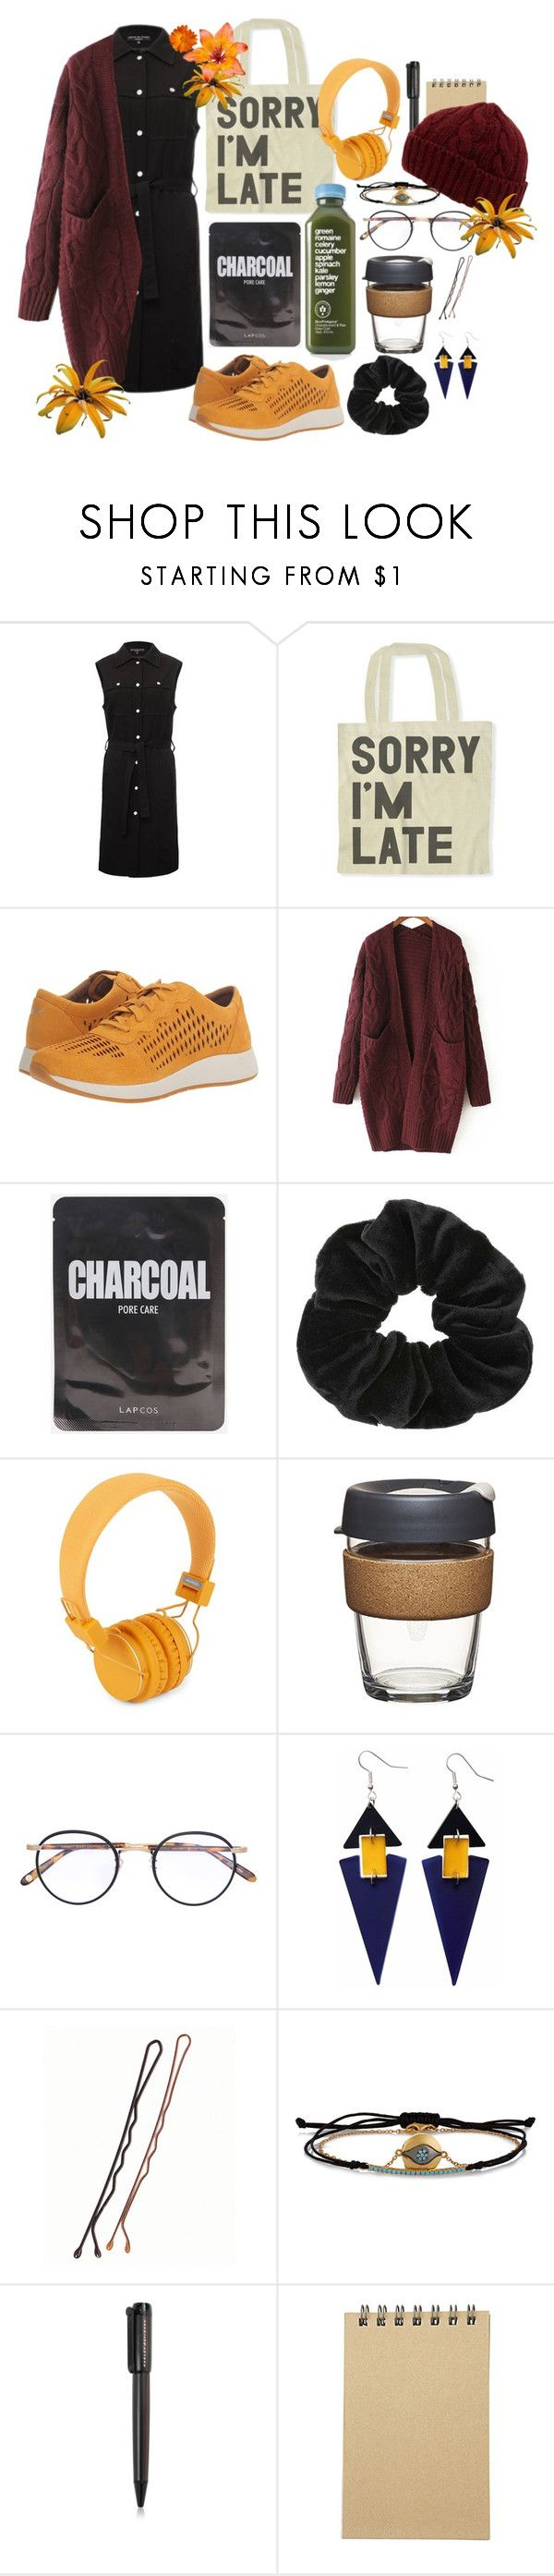 """on my way to uni"" by nover on Polyvore featuring Doriane van Overeem, Dansko, WithChic, Miss Selfridge, Urbanears, Garrett Leight, Toolally, IaM by Ileana Makri, Harley-Davidson and Muji"